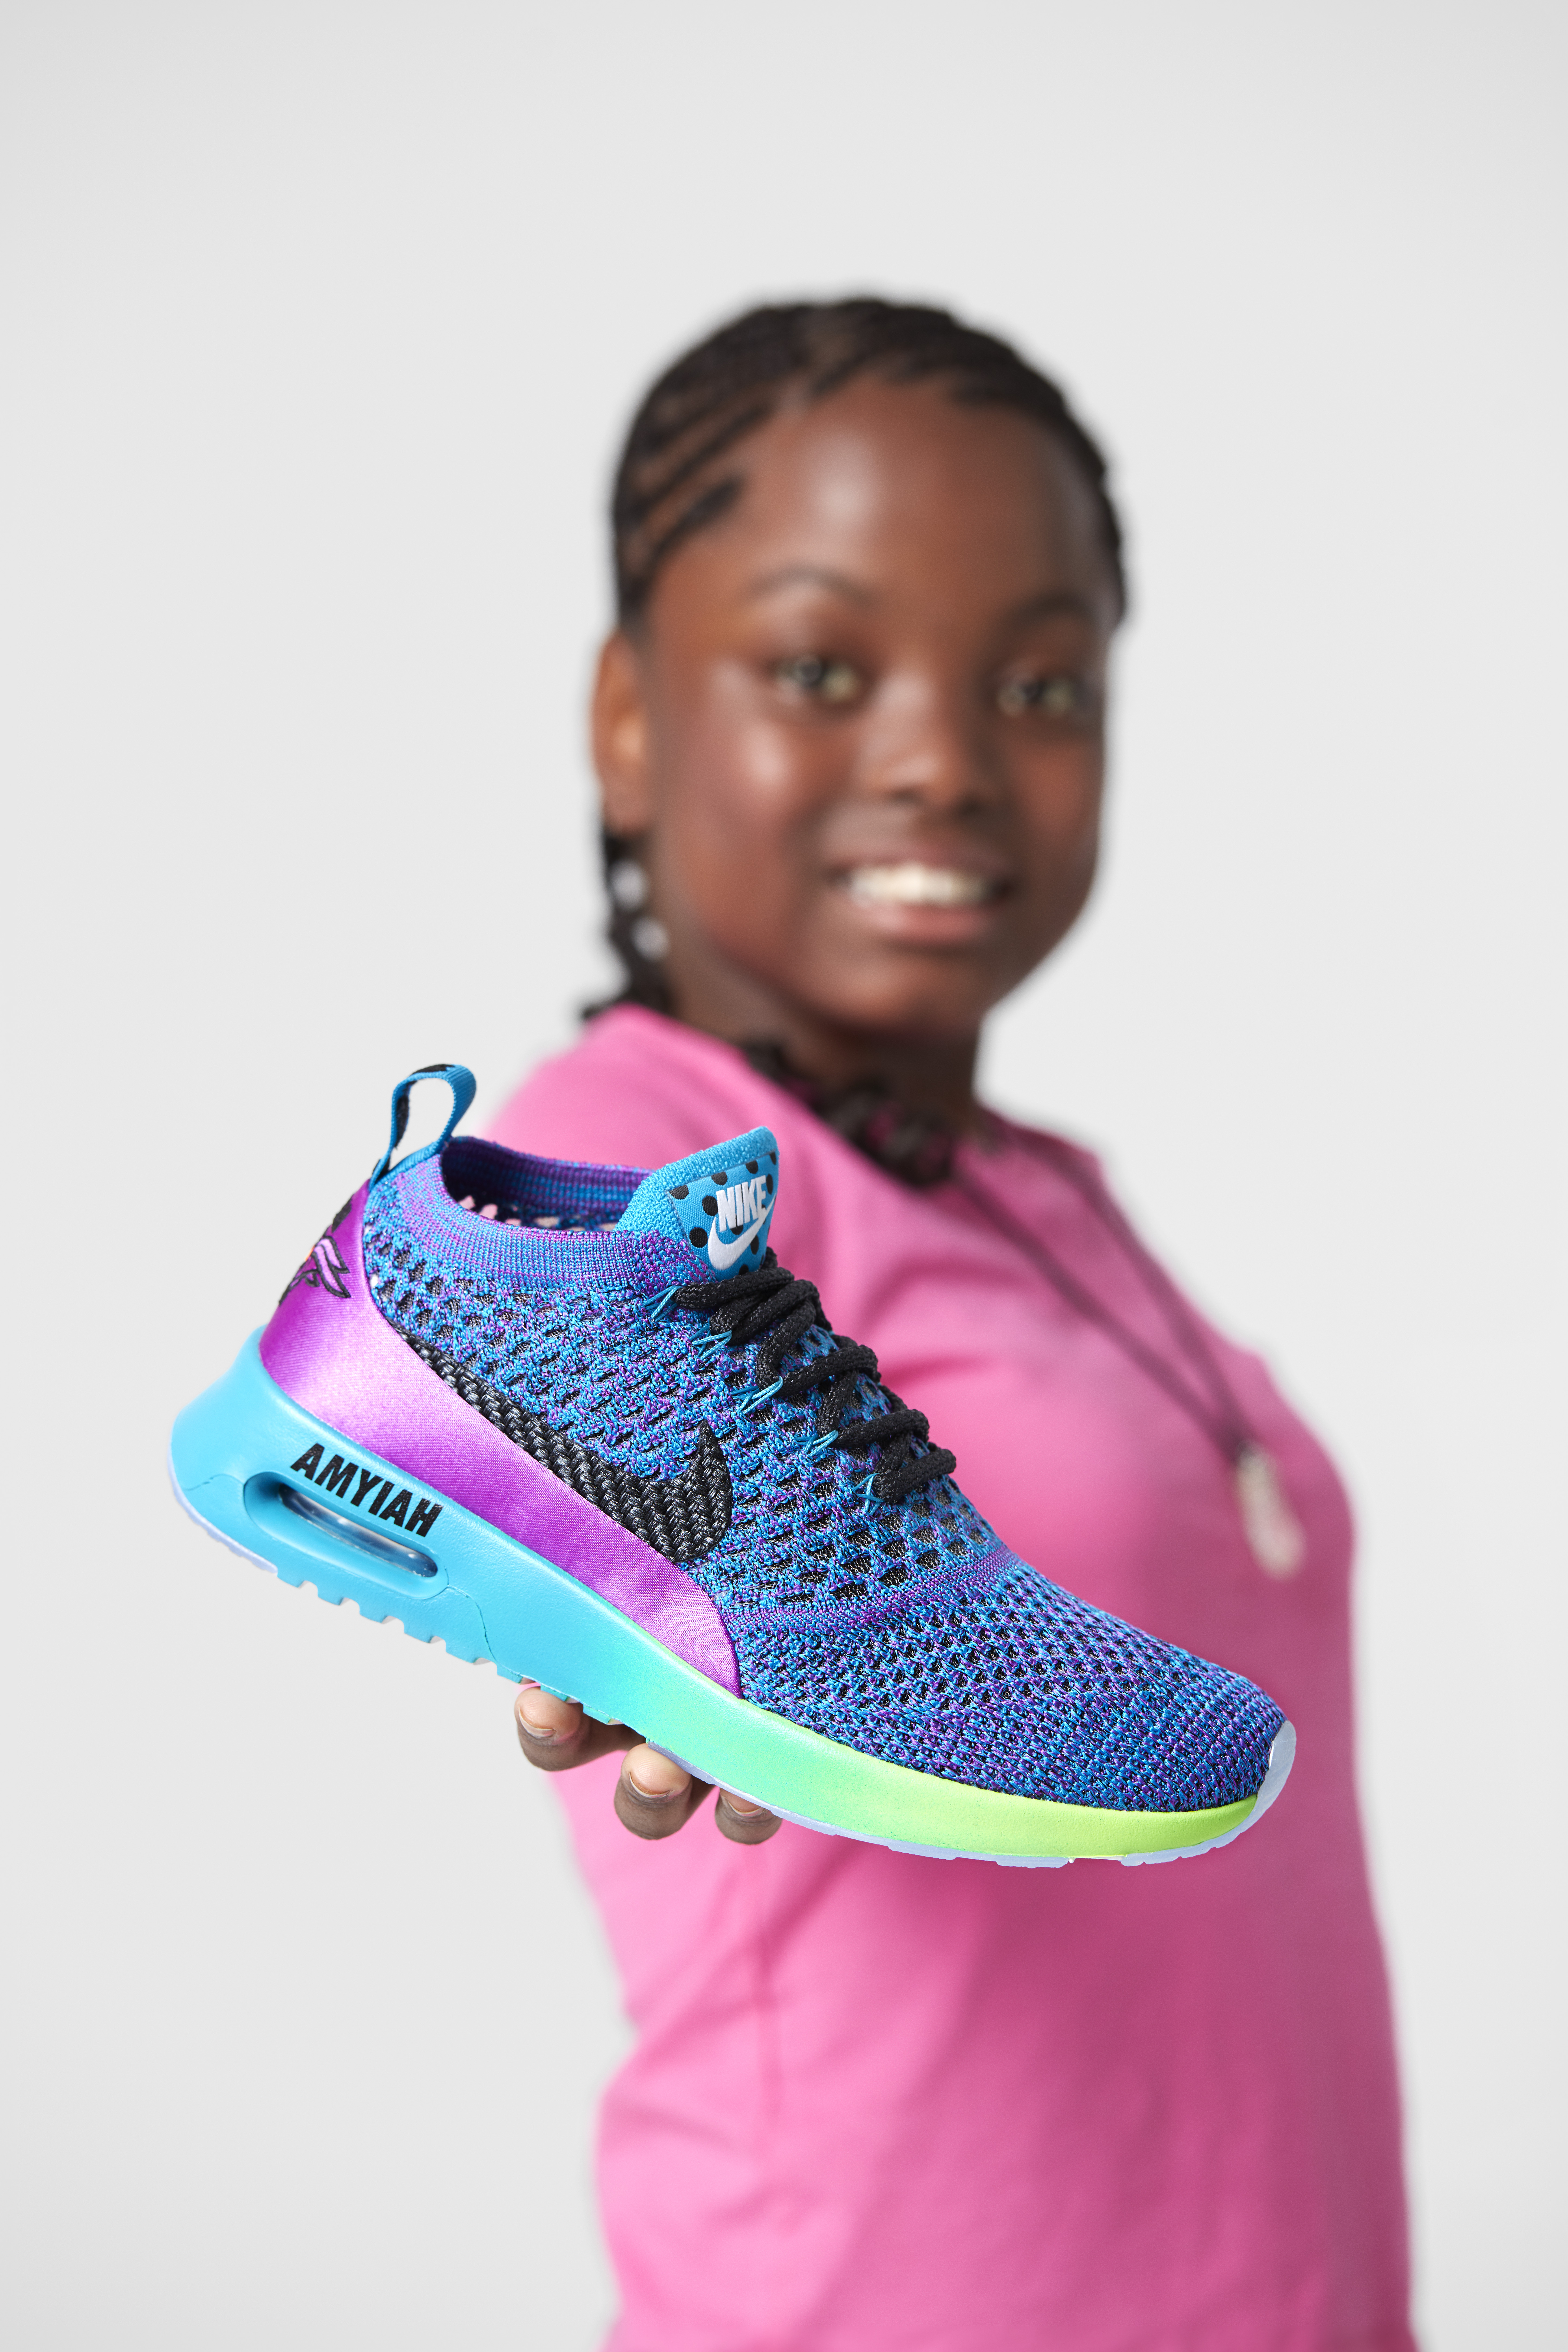 Nike x Doernbecher Freestyle Collection 2017 - Nike Air Max Thea Ultra Flyknit x Amyiah Robinson